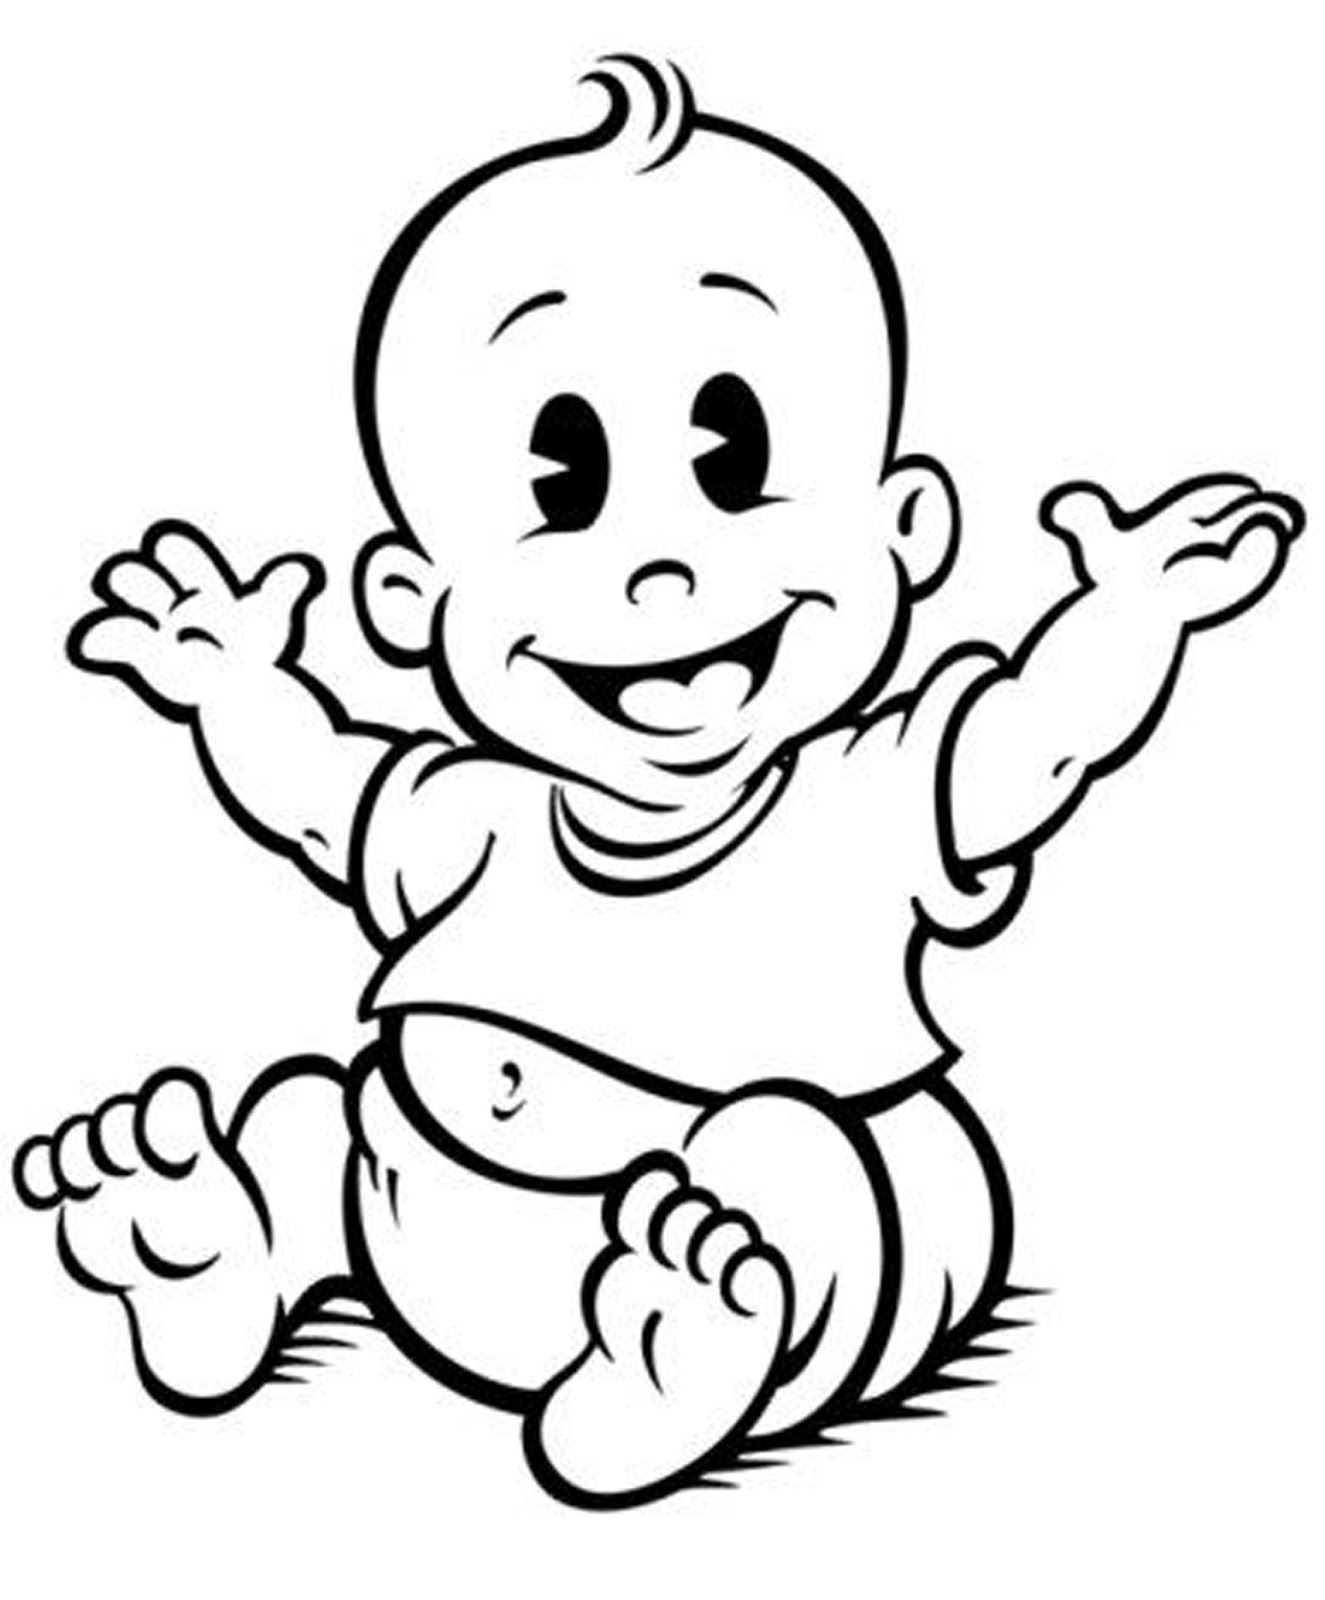 15 Baby Clipart